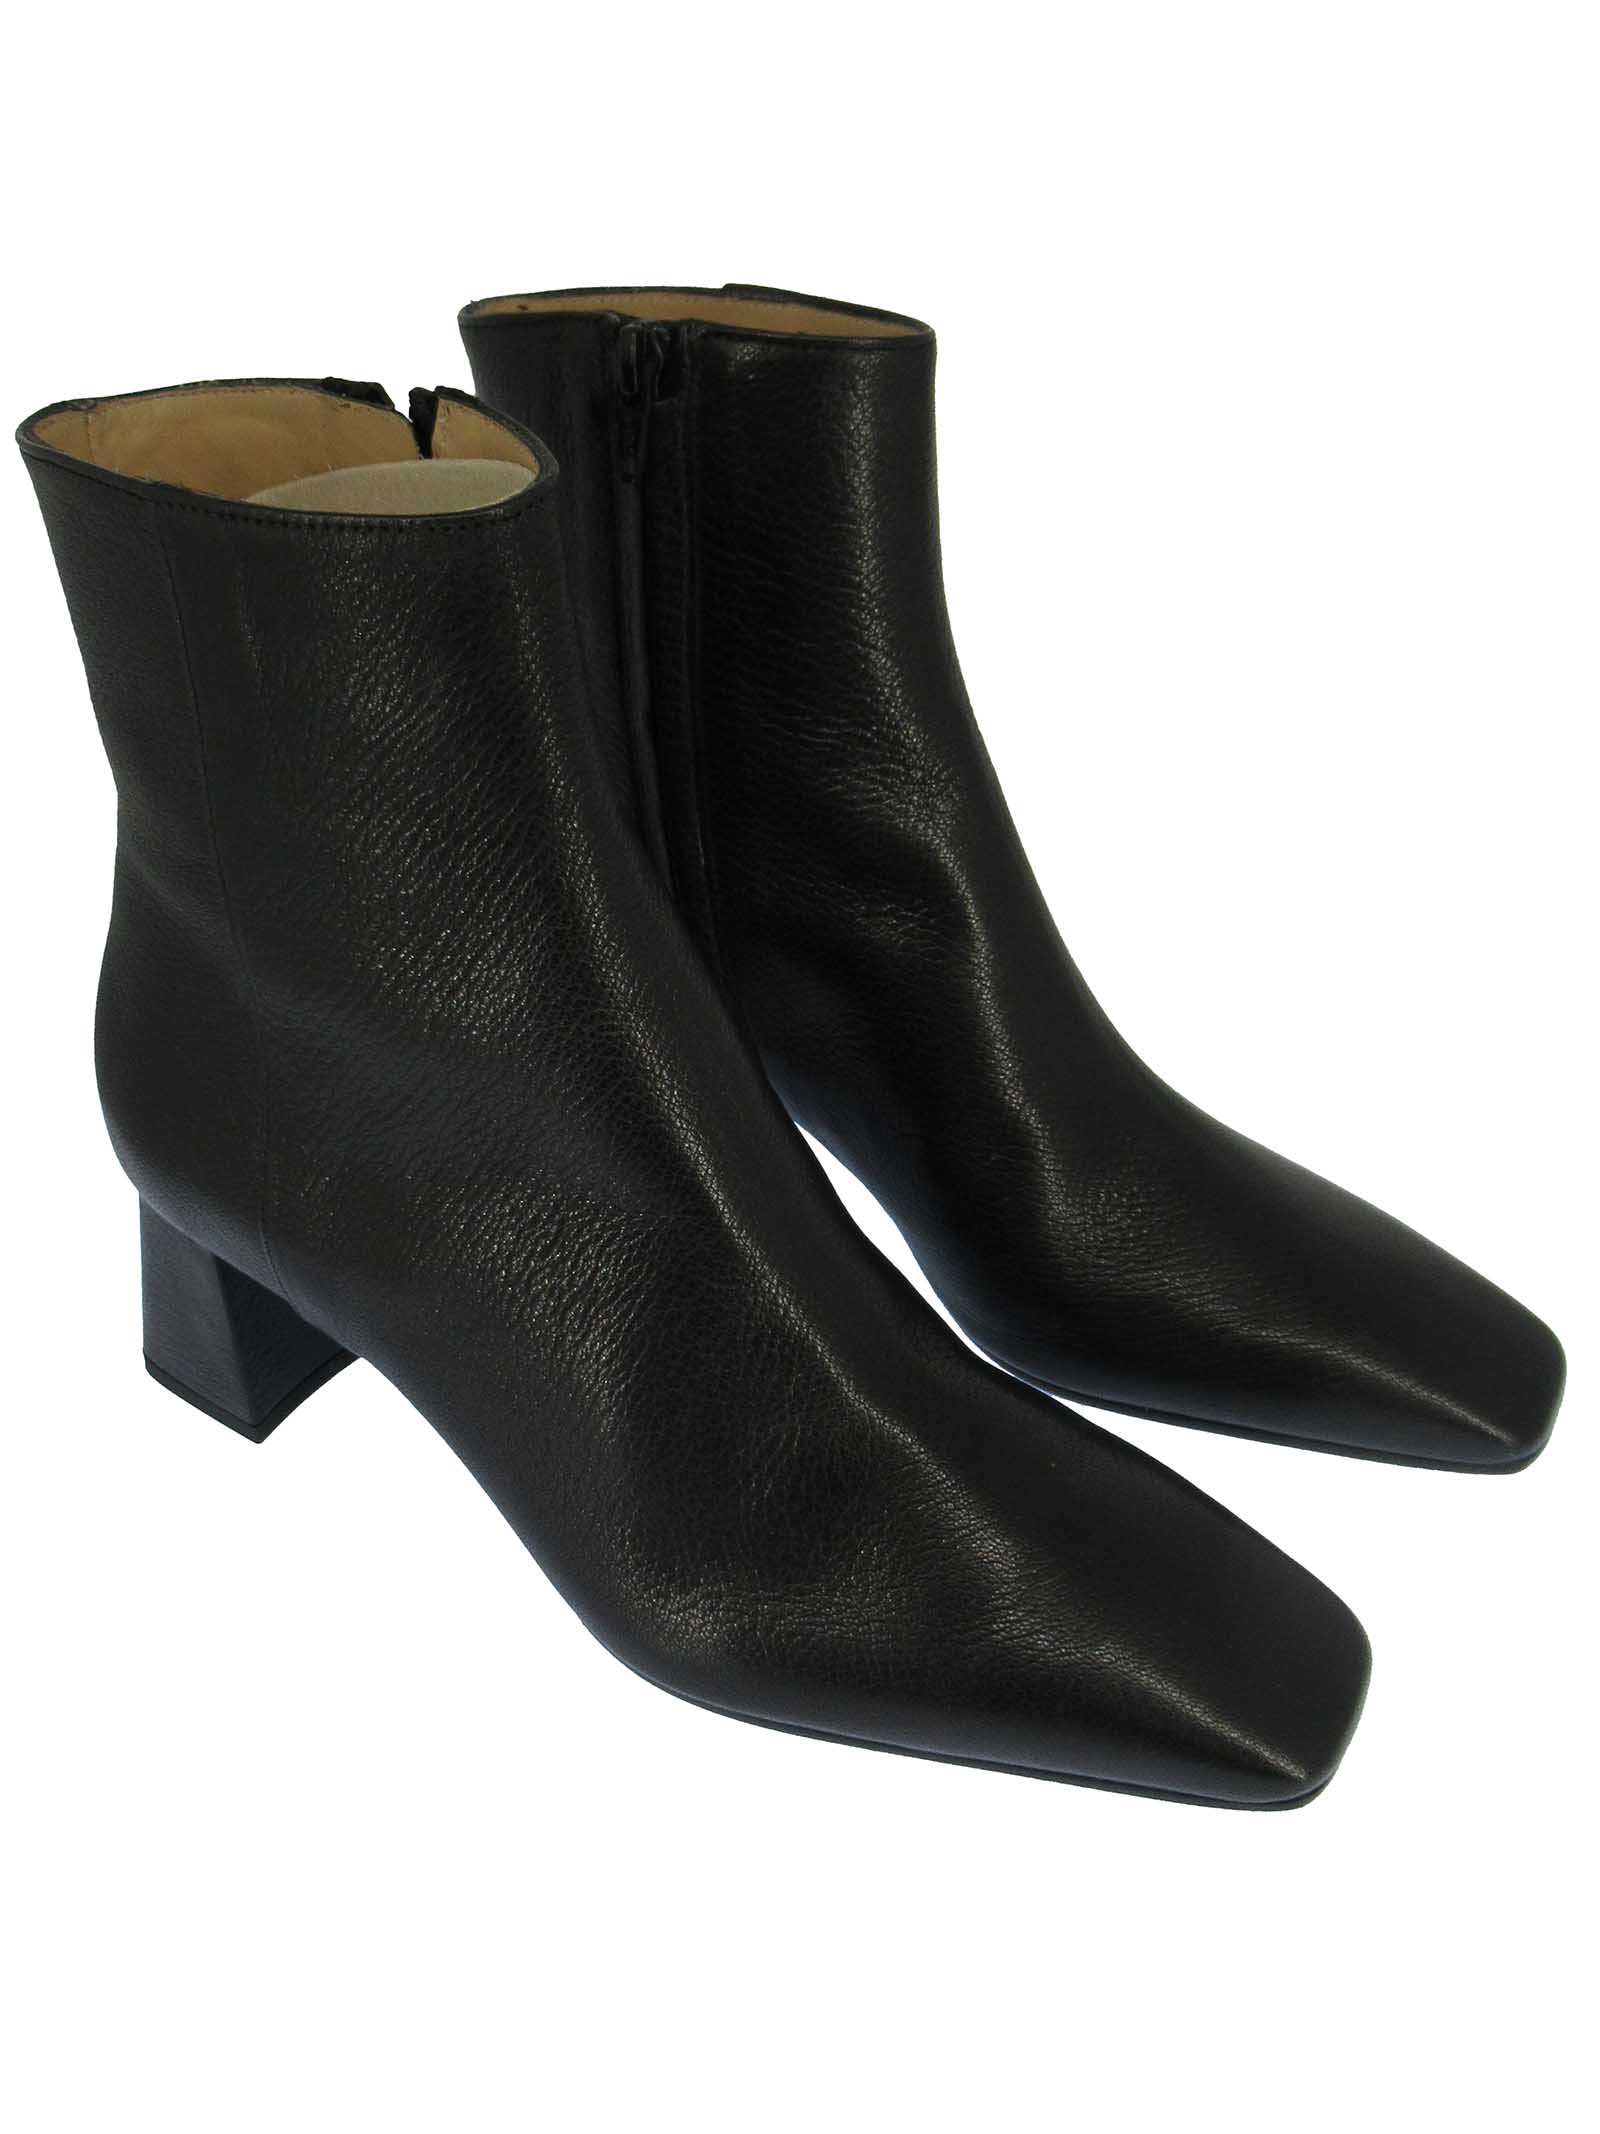 Women's Shoes Ankle Boots in Black Leather with Square Toe Side Zip and Medium Heel Fabio Rusconi | Ankle Boots | I-2099001